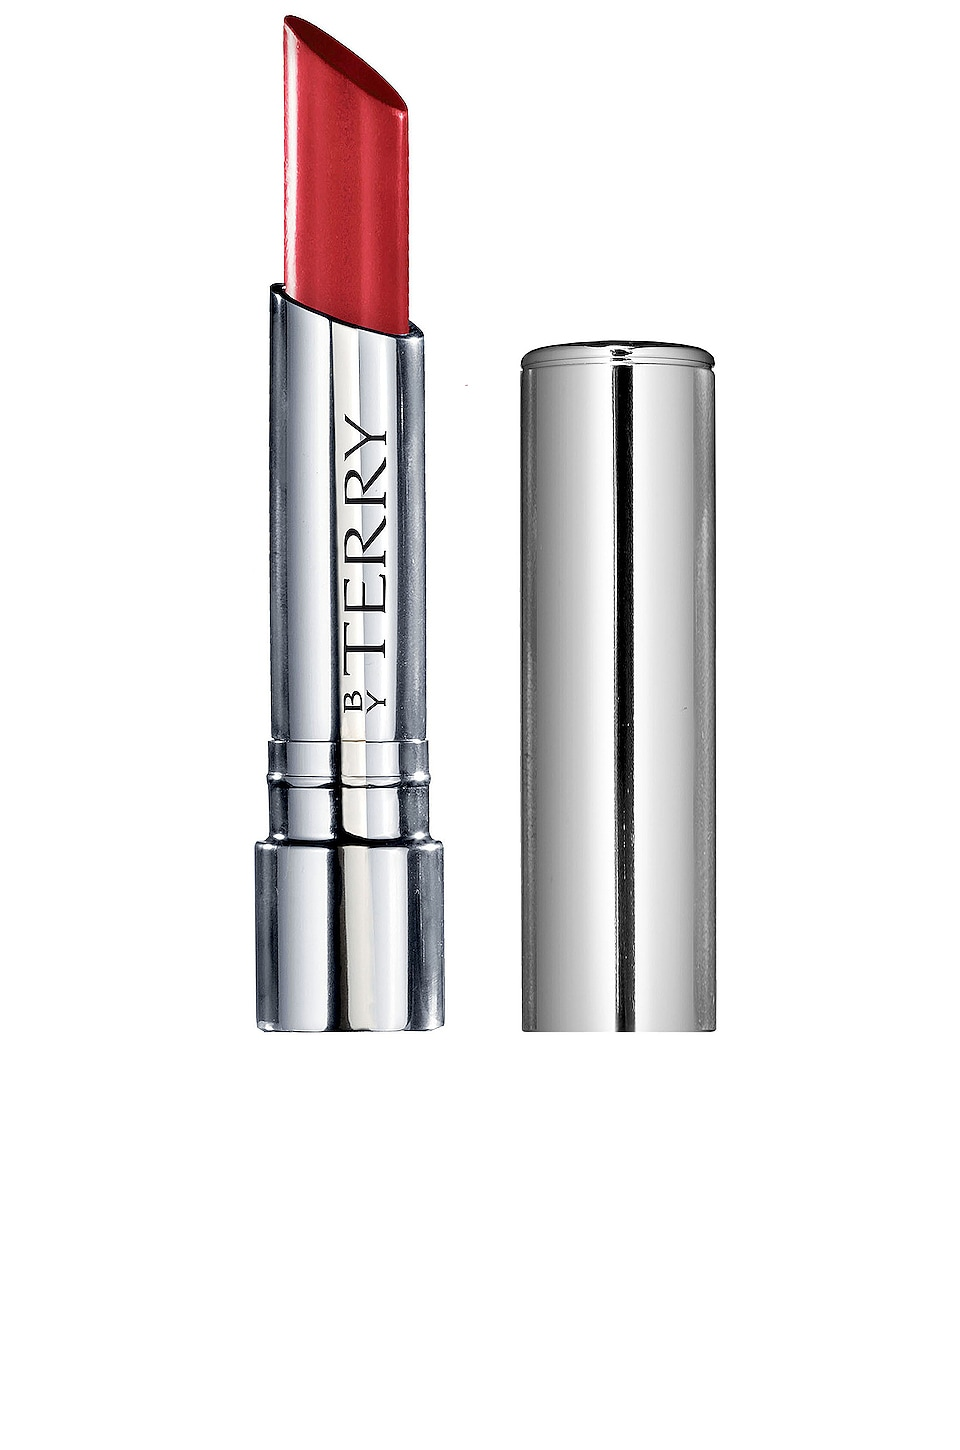 By Terry Hyaluronic Sheer Rouge Hydra-Balm Lipstick in Party Girl